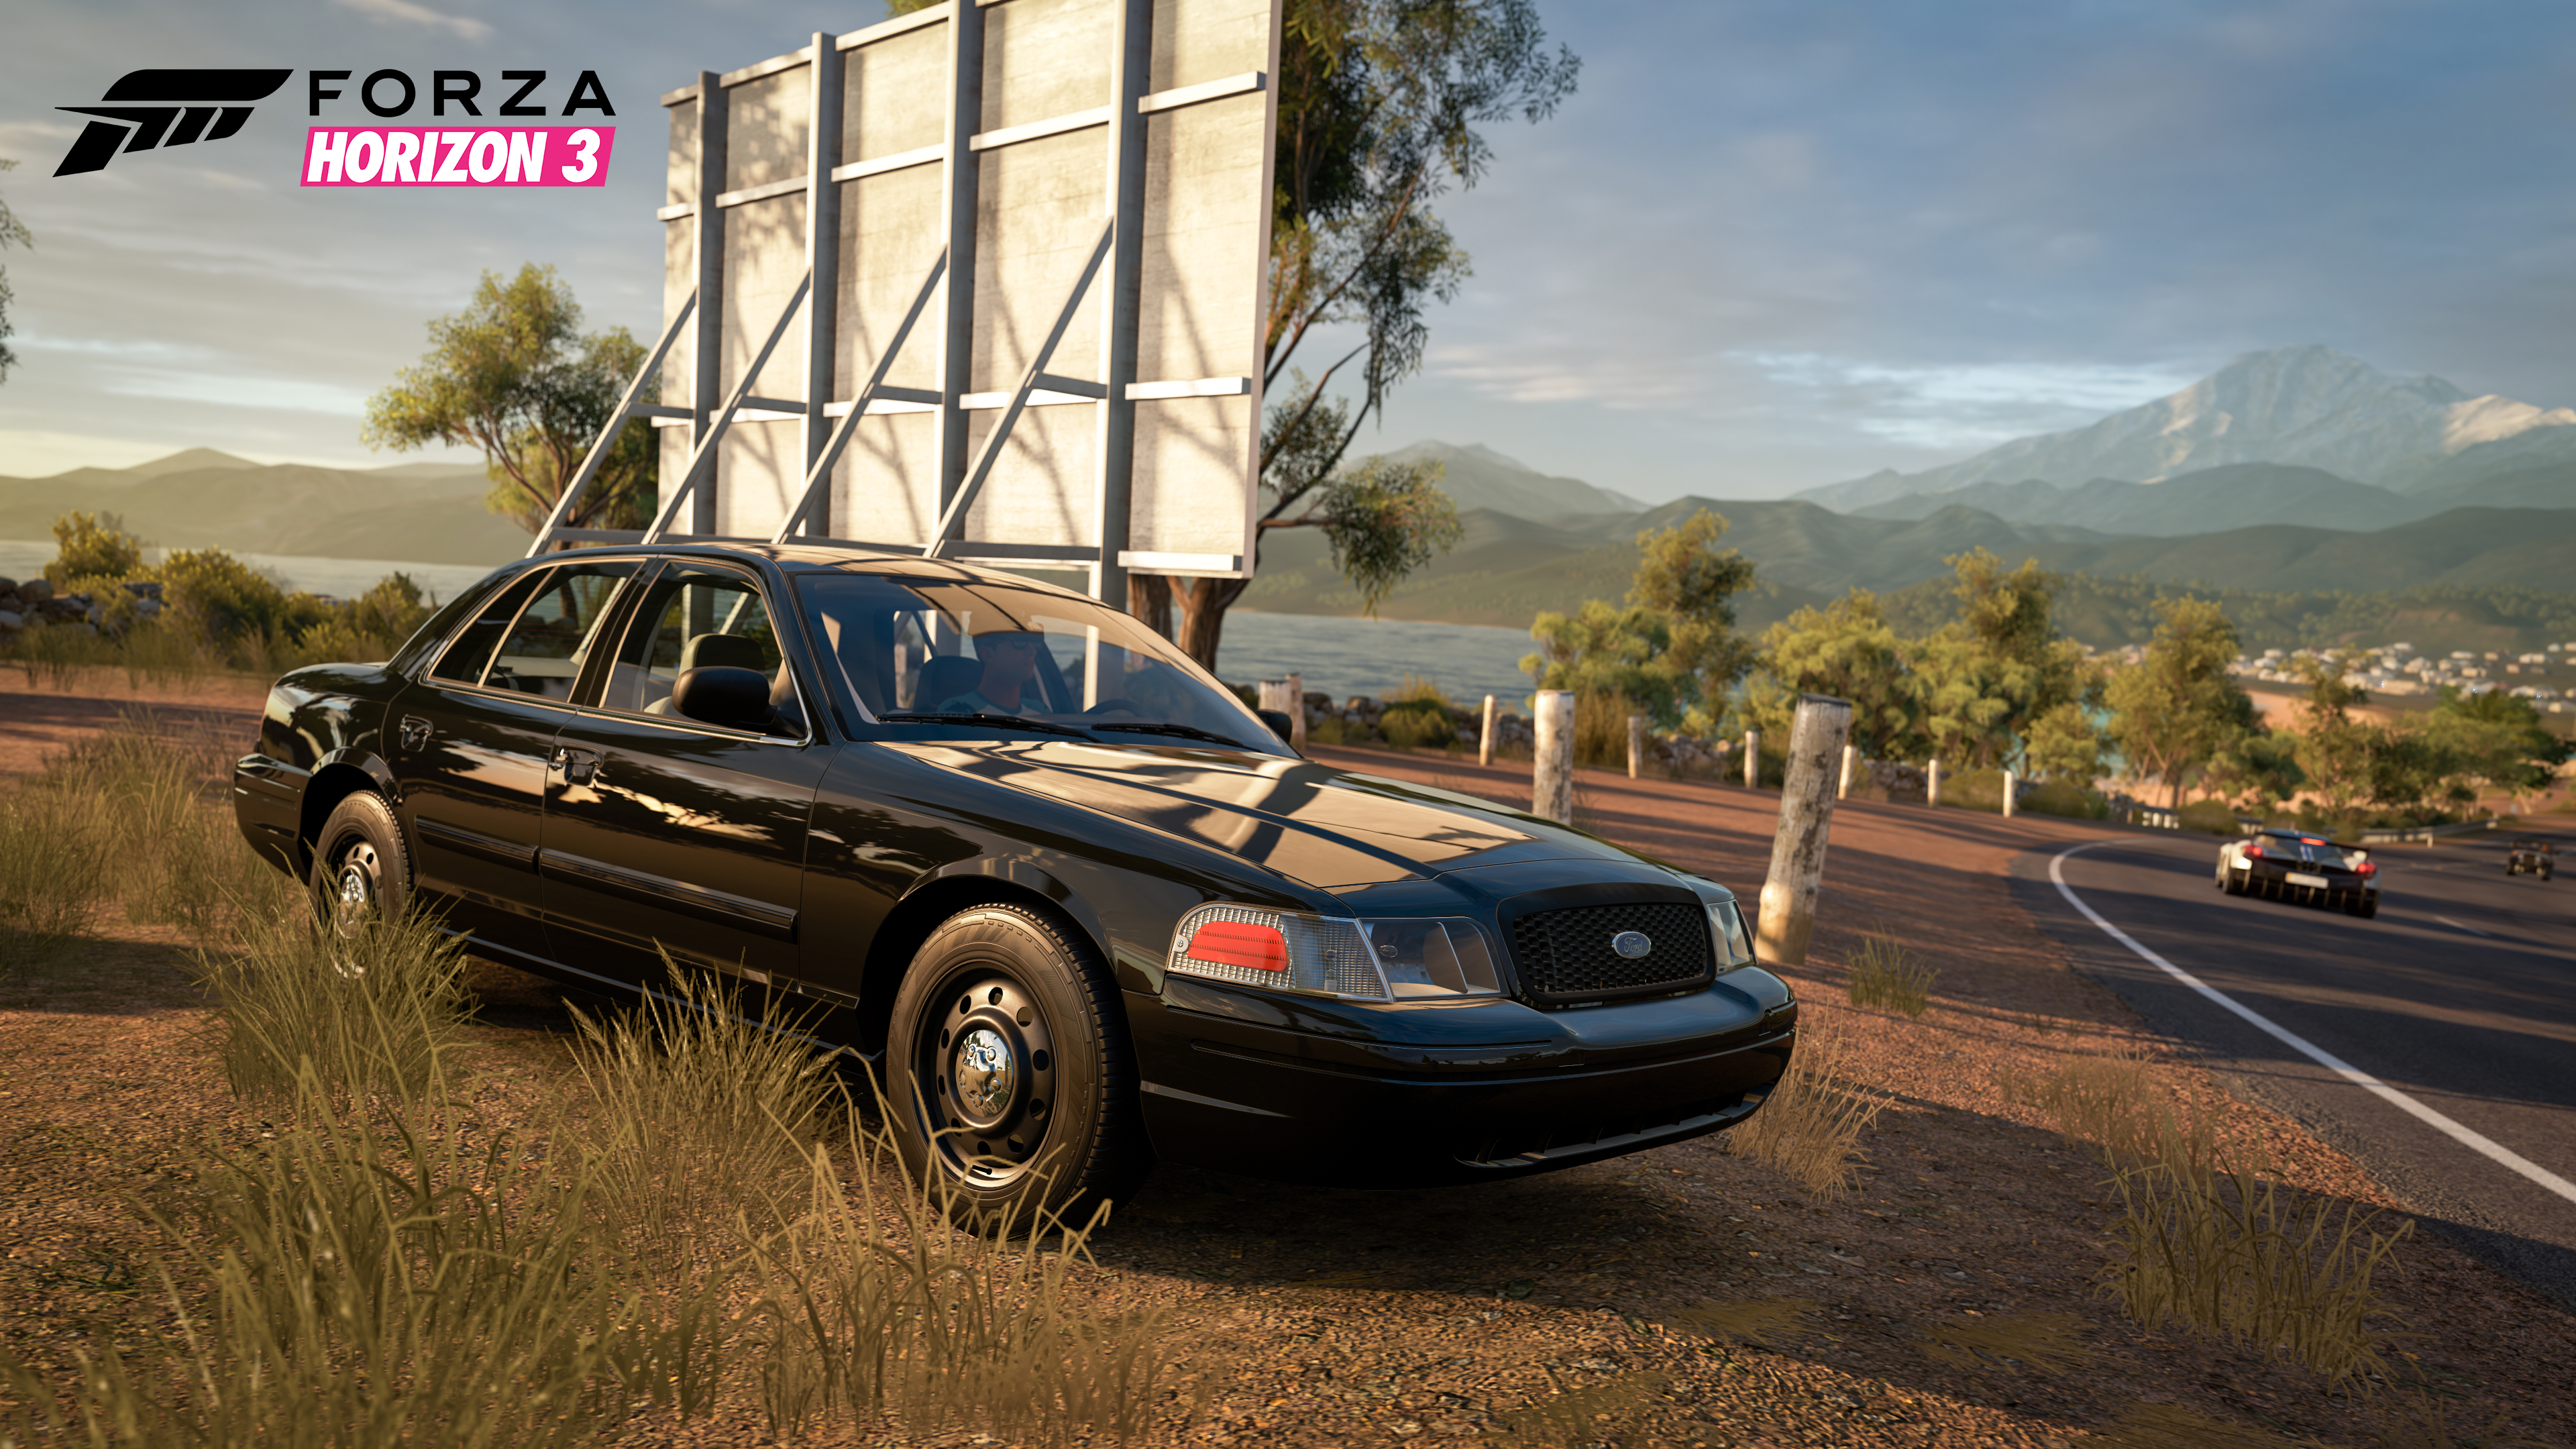 Forza Horizon 3 Wallpapers, Pictures, Images